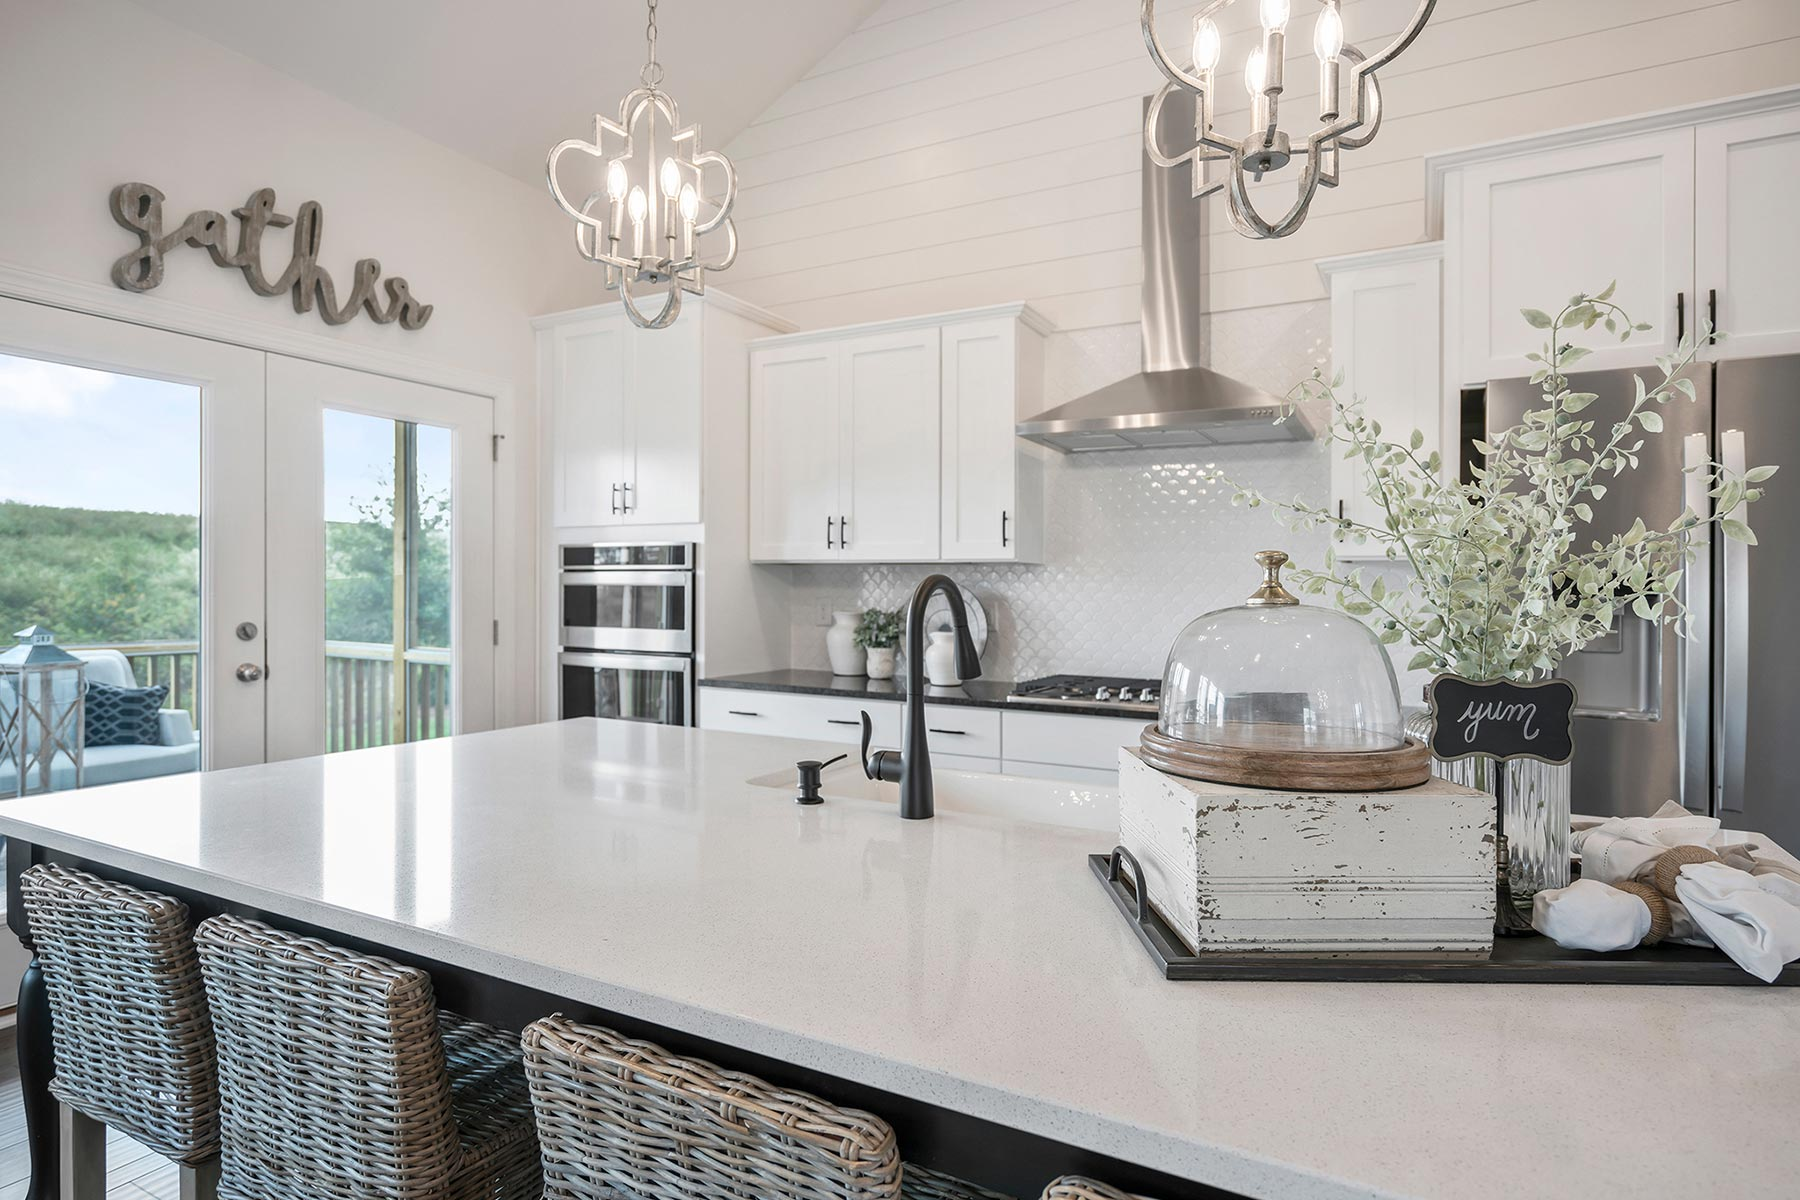 Camden Plan Kitchen at Ballentine Place in Holly Springs North Carolina by Mattamy Homes